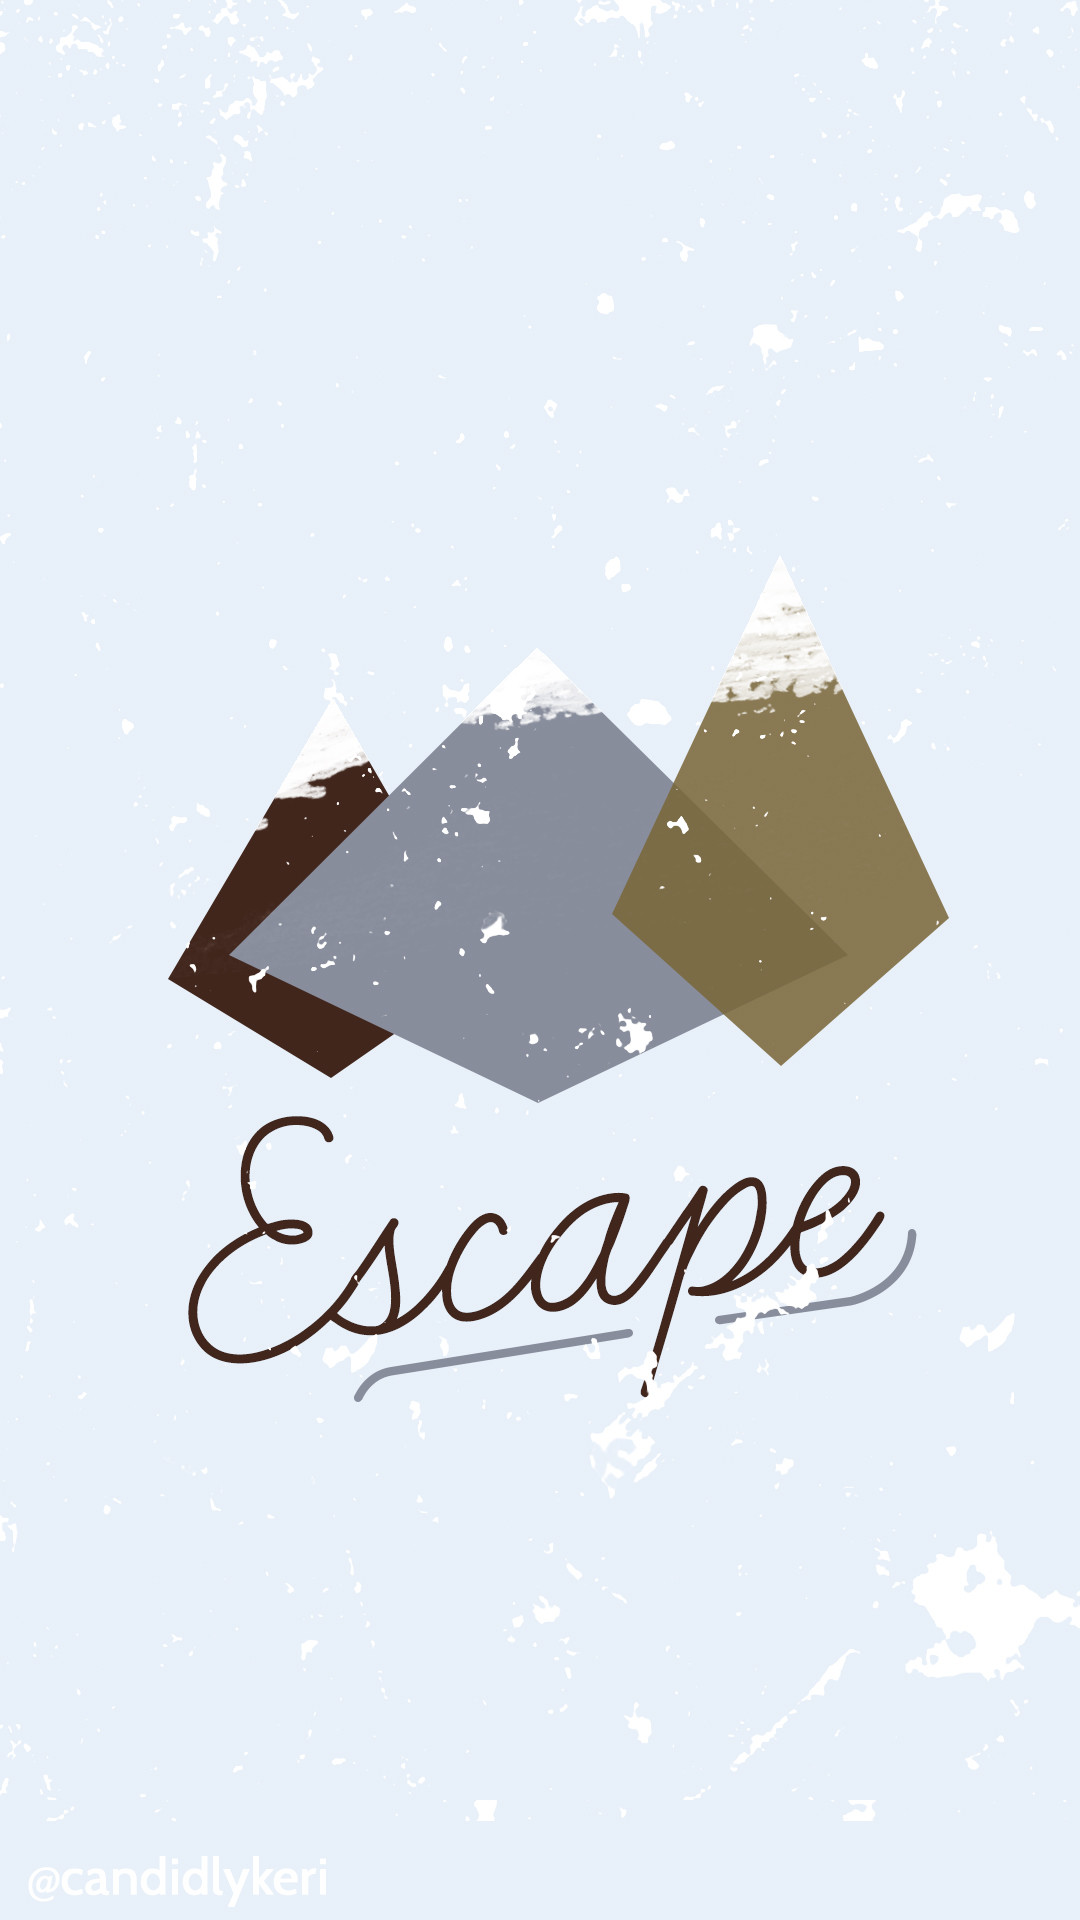 Escape cute mountain winter/fall scene wallpaper you can download for free  on the blog